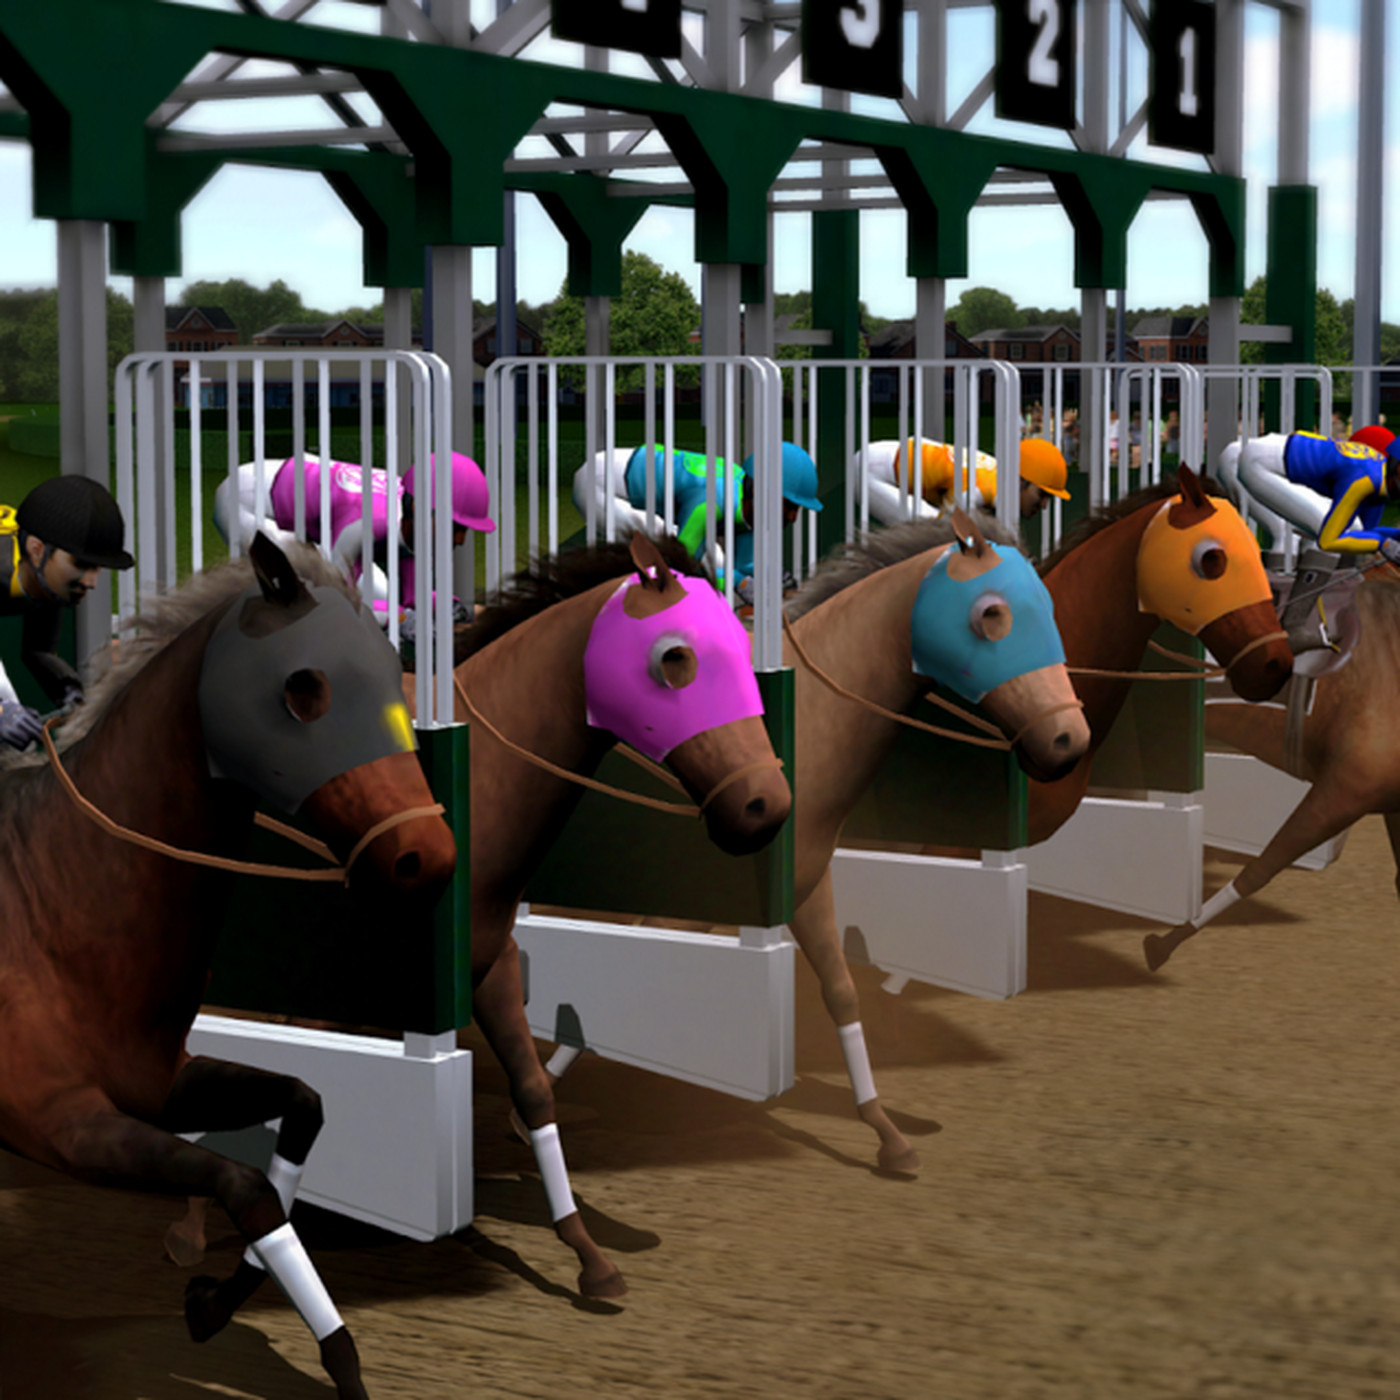 A Madden Designer Makes A Big Bet On The Kentucky Derby With His